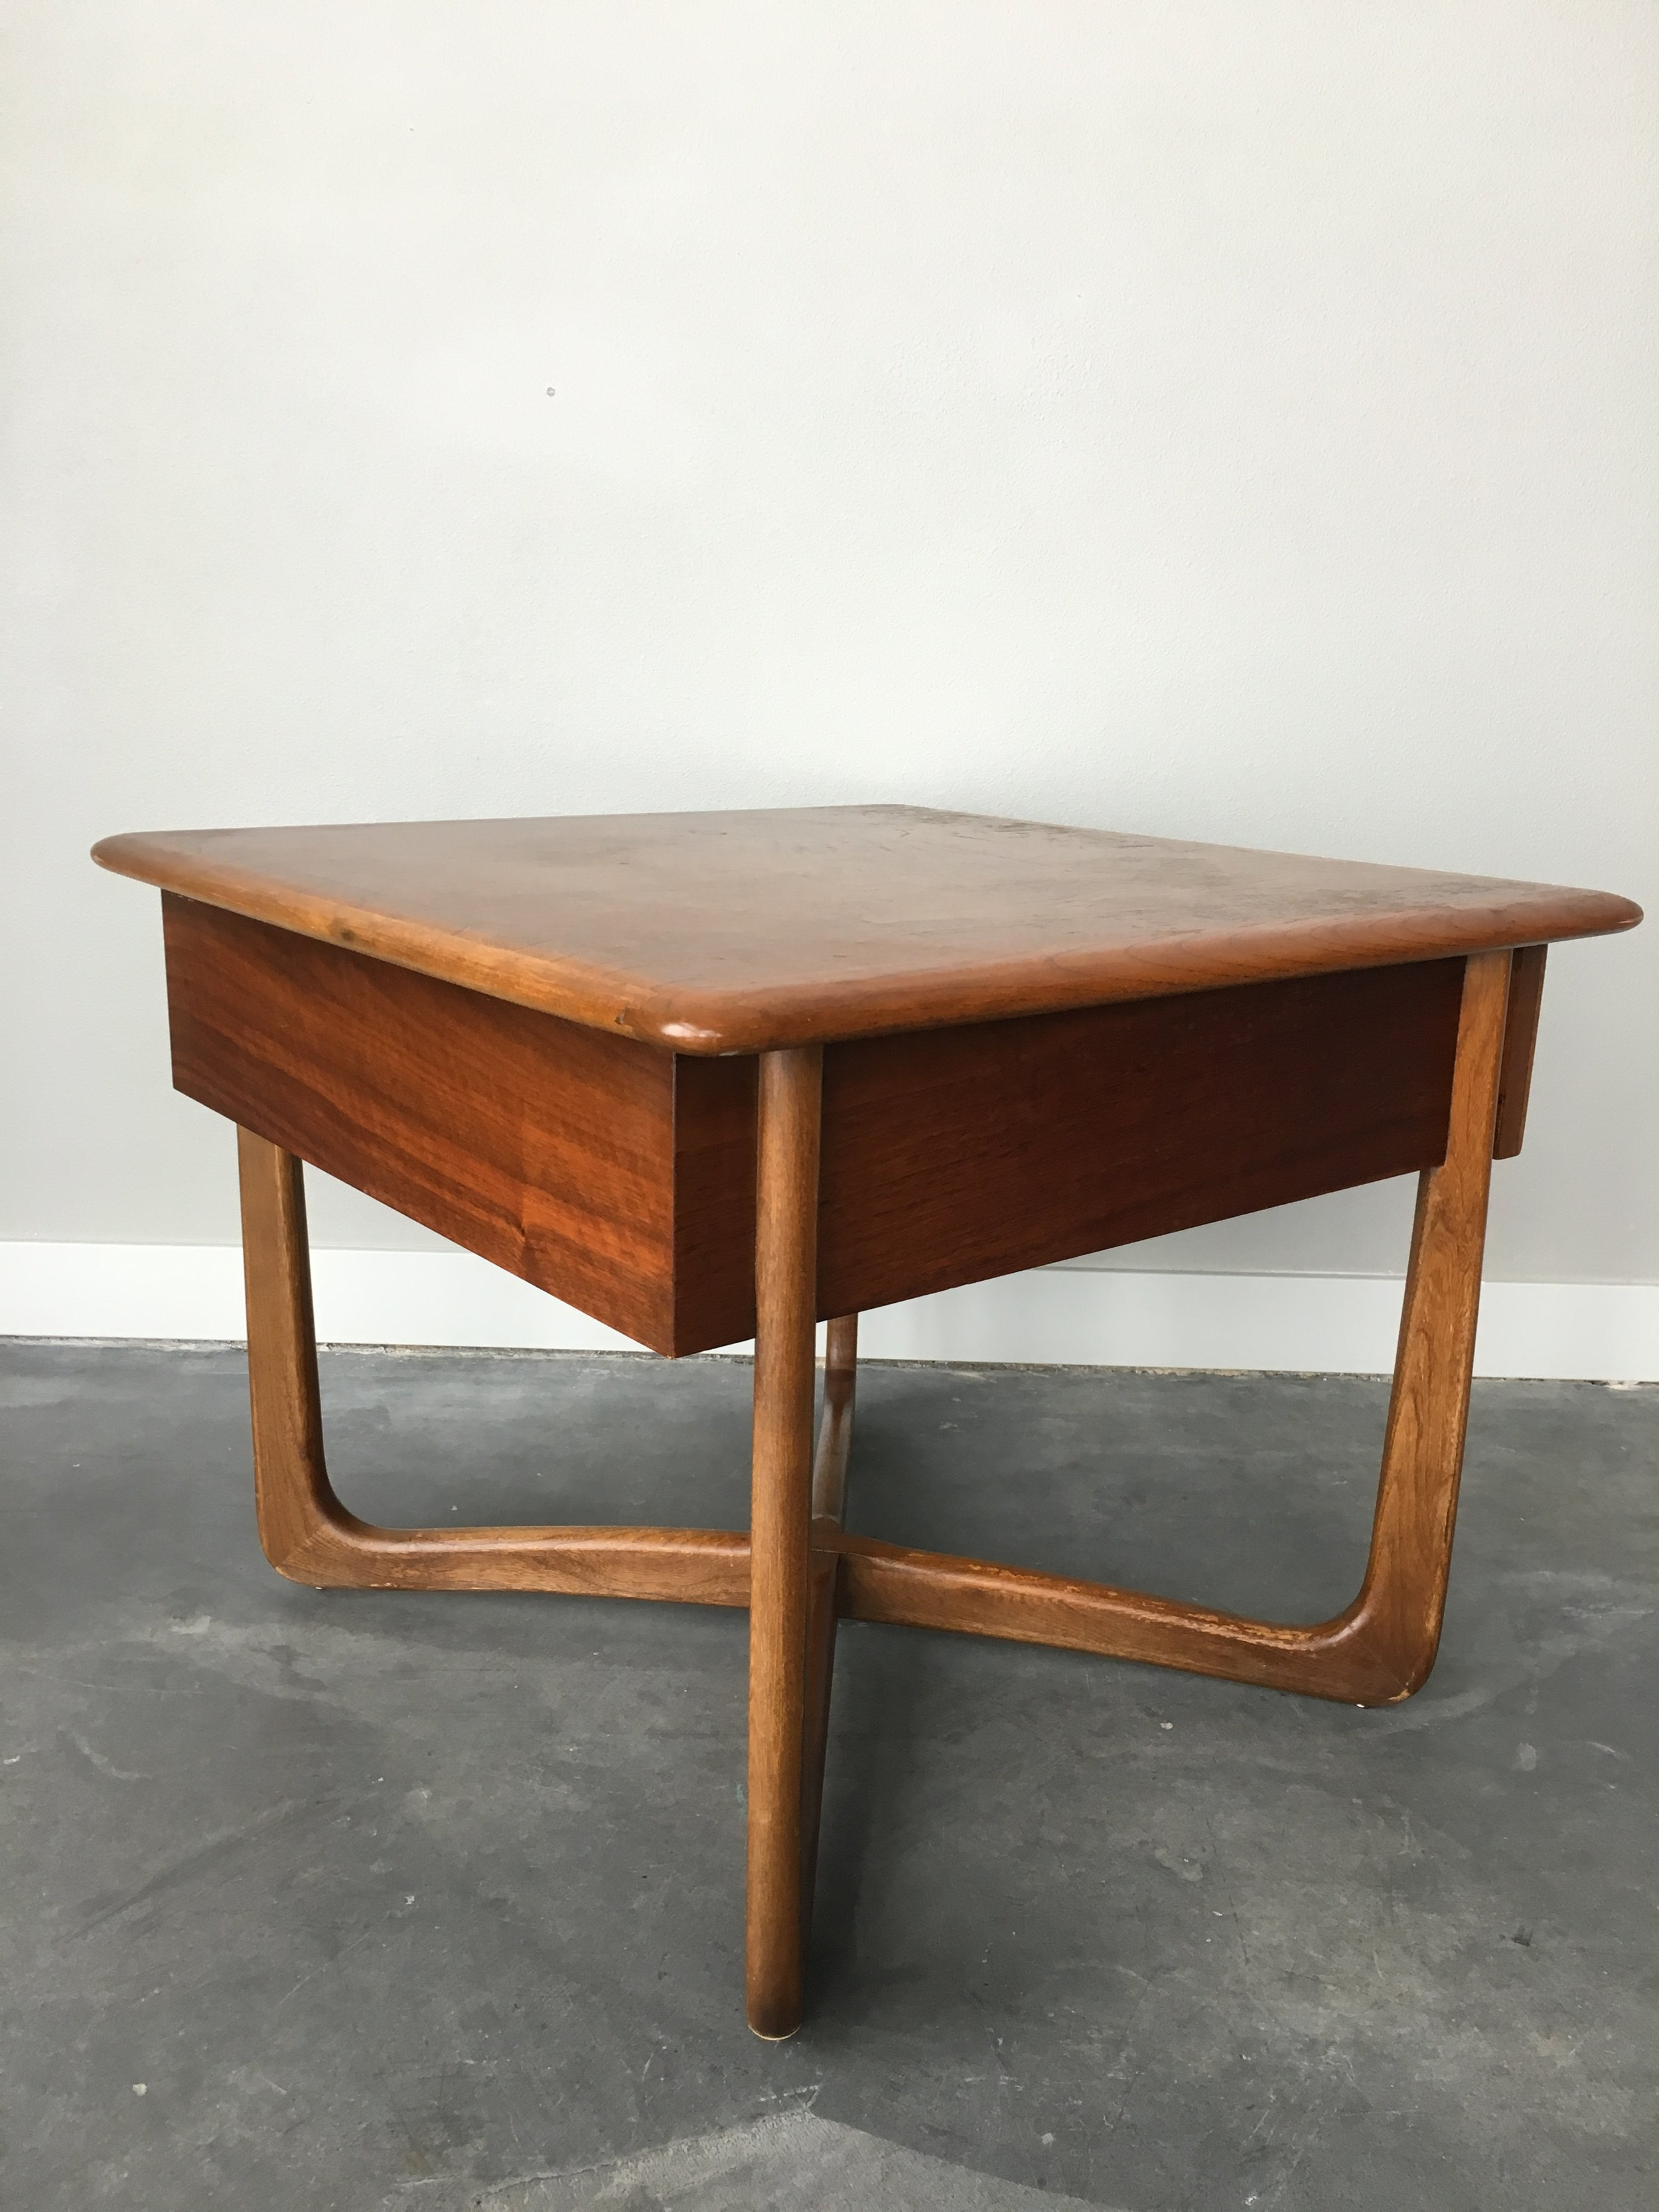 Vintage Mid Century Modern Lane Perception Square Side Table